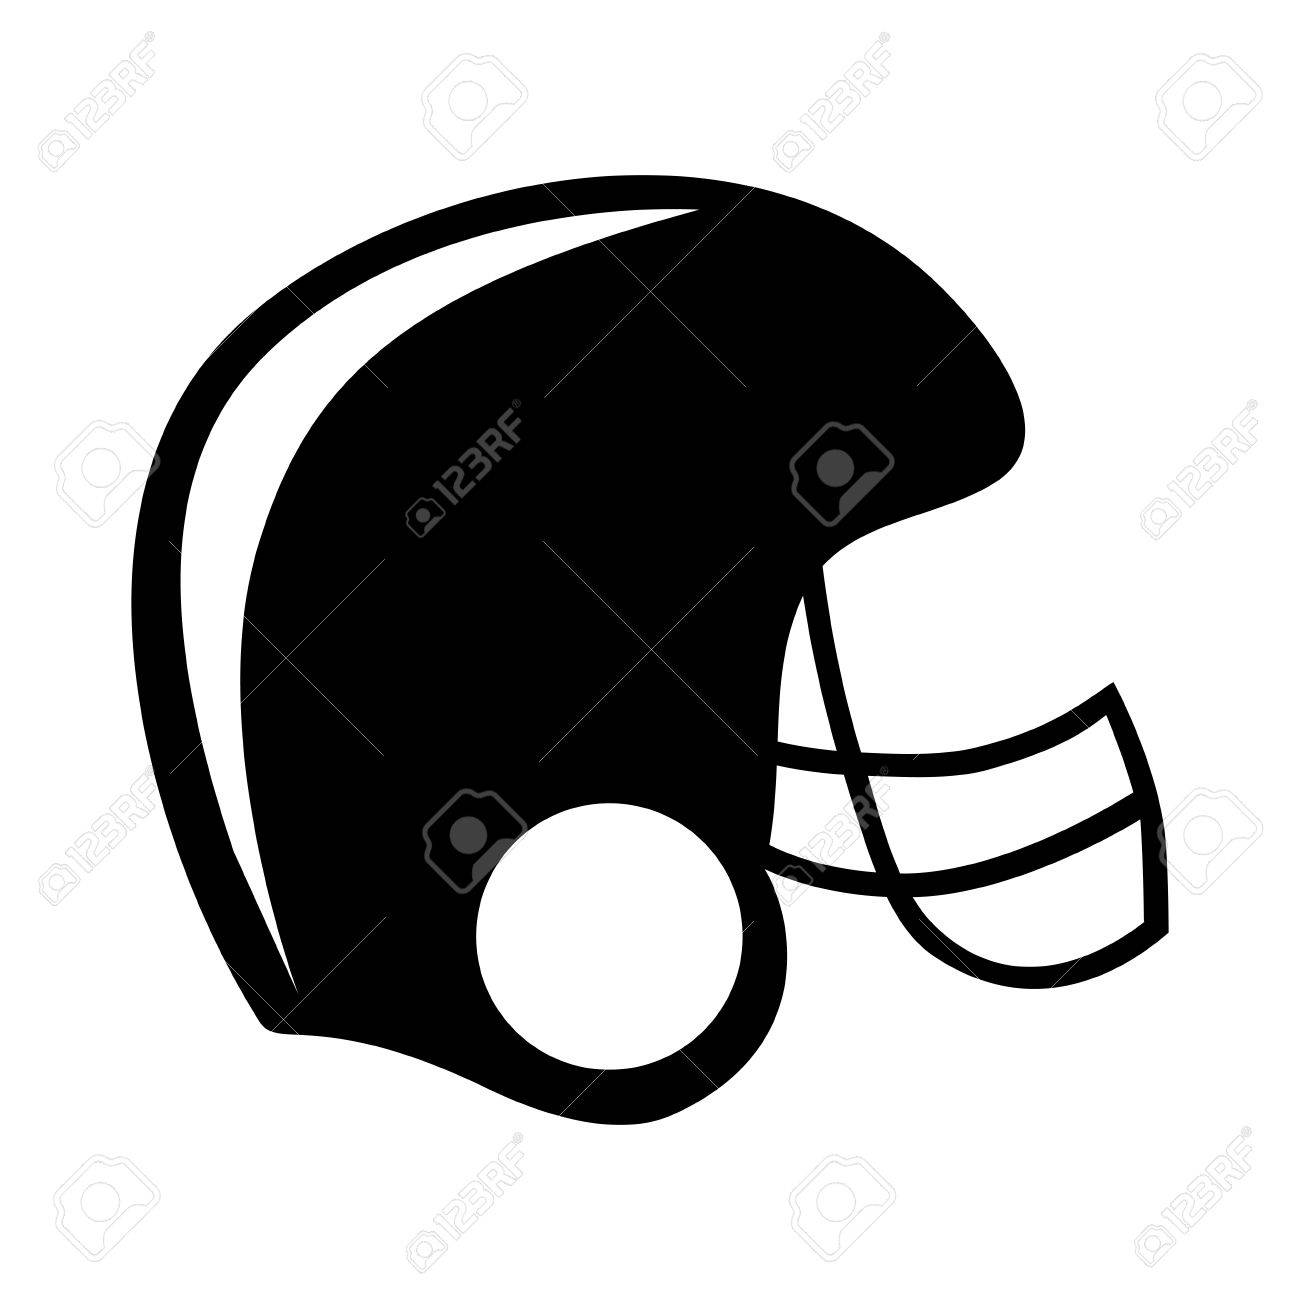 football helmet icon image vector illustration design royalty free rh 123rf com